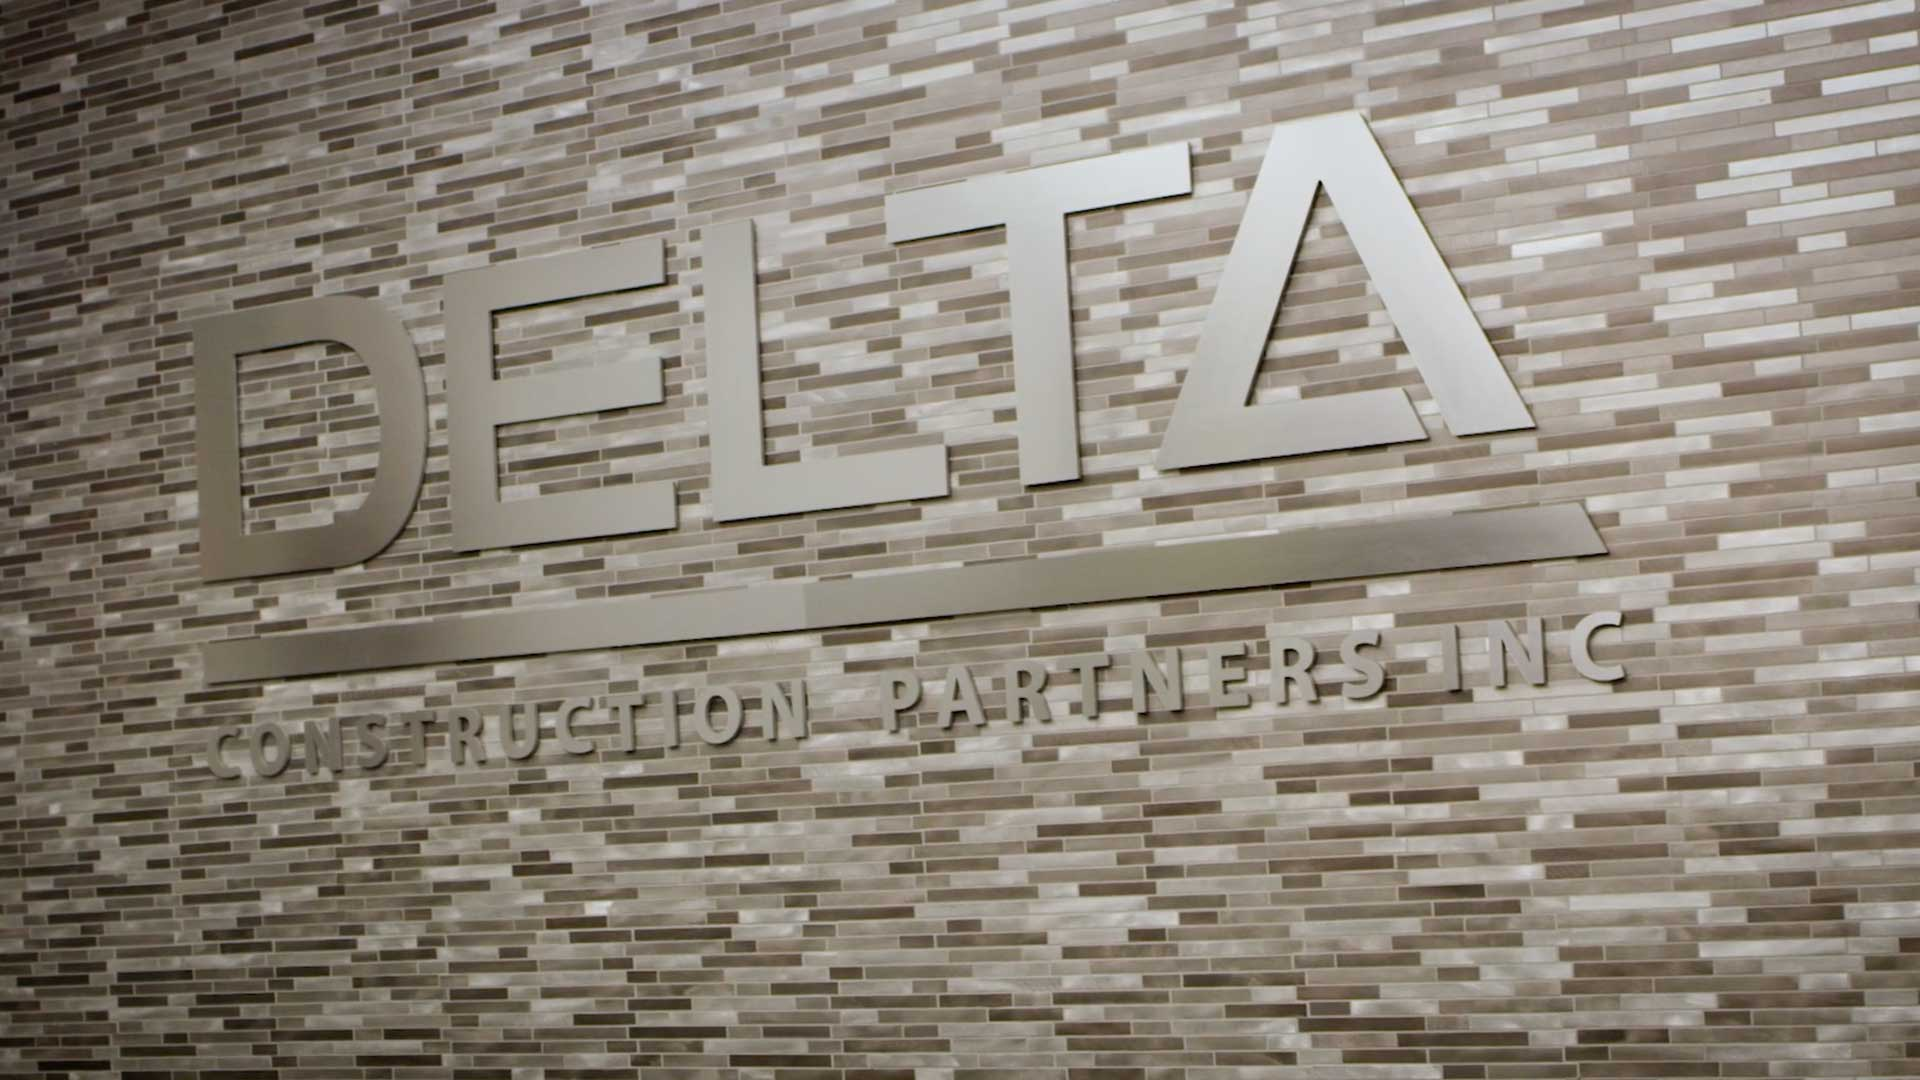 Delta Construction logo on wall